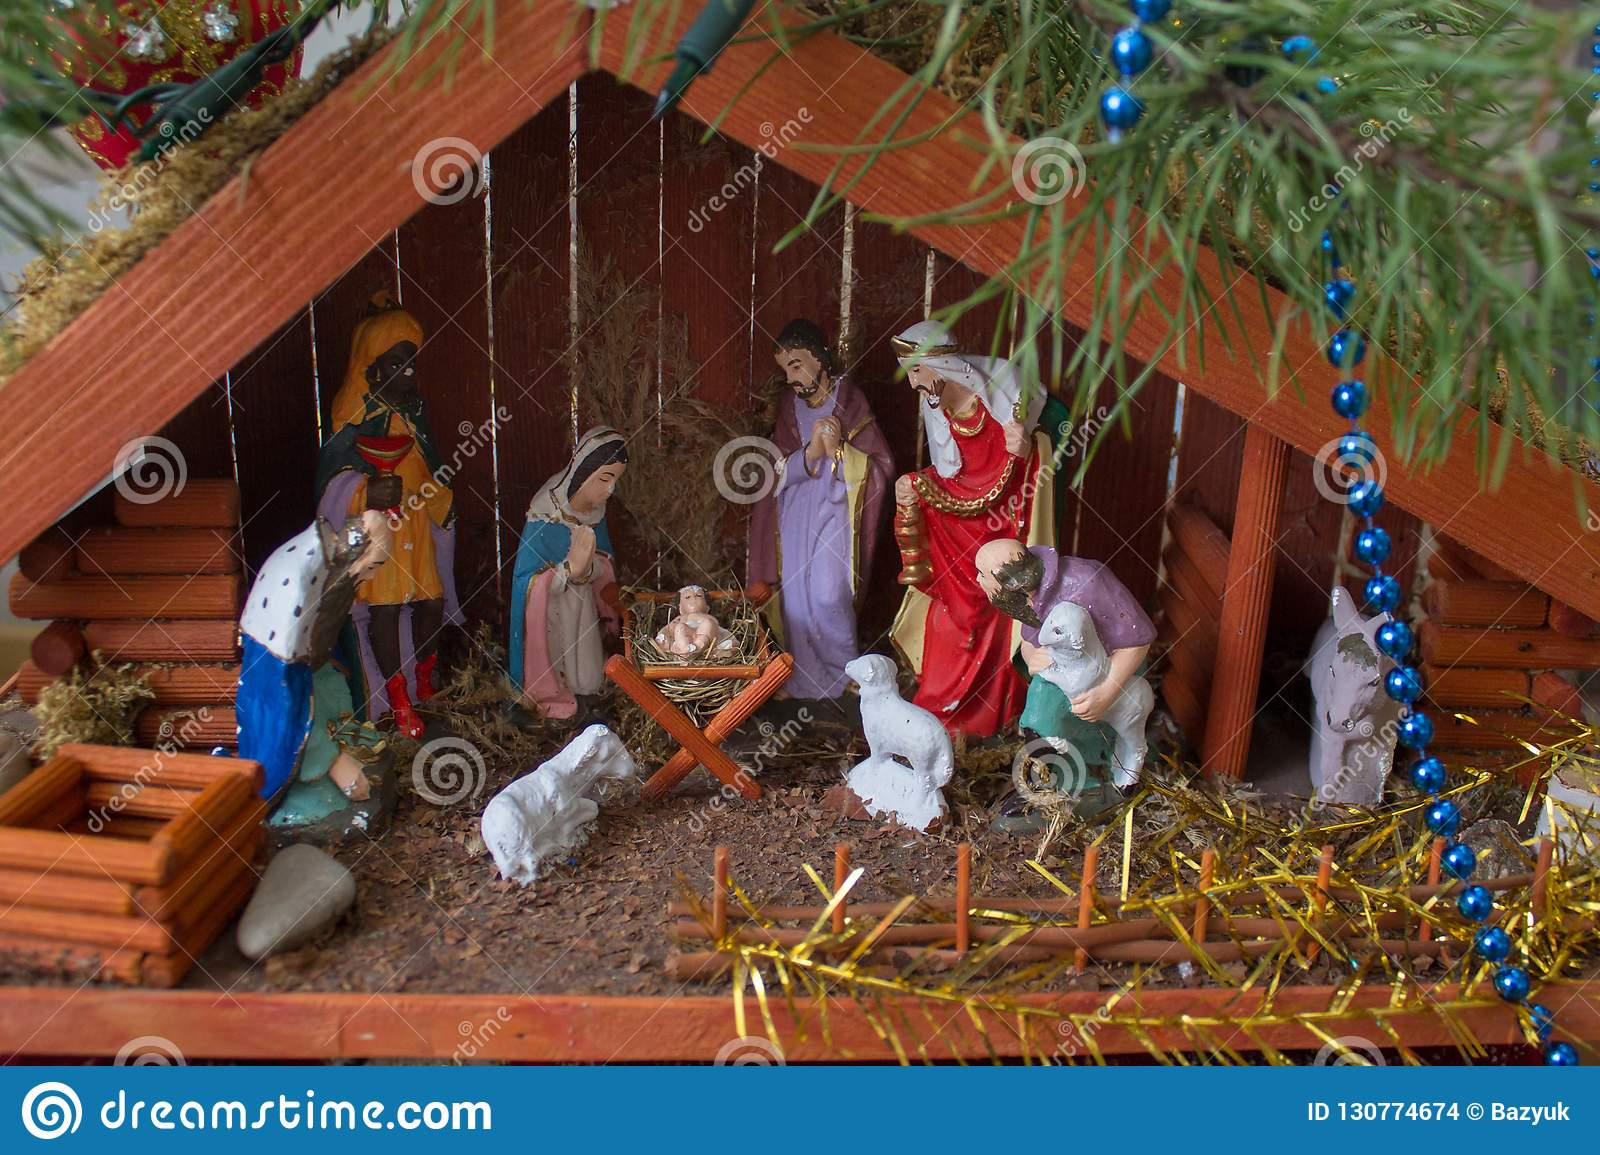 House Christmas Nativity The Birth Of Jesus In The Manger Between The Animals In A Wooden House Stock Photo Image Of Beautiful Celebrate 130774674